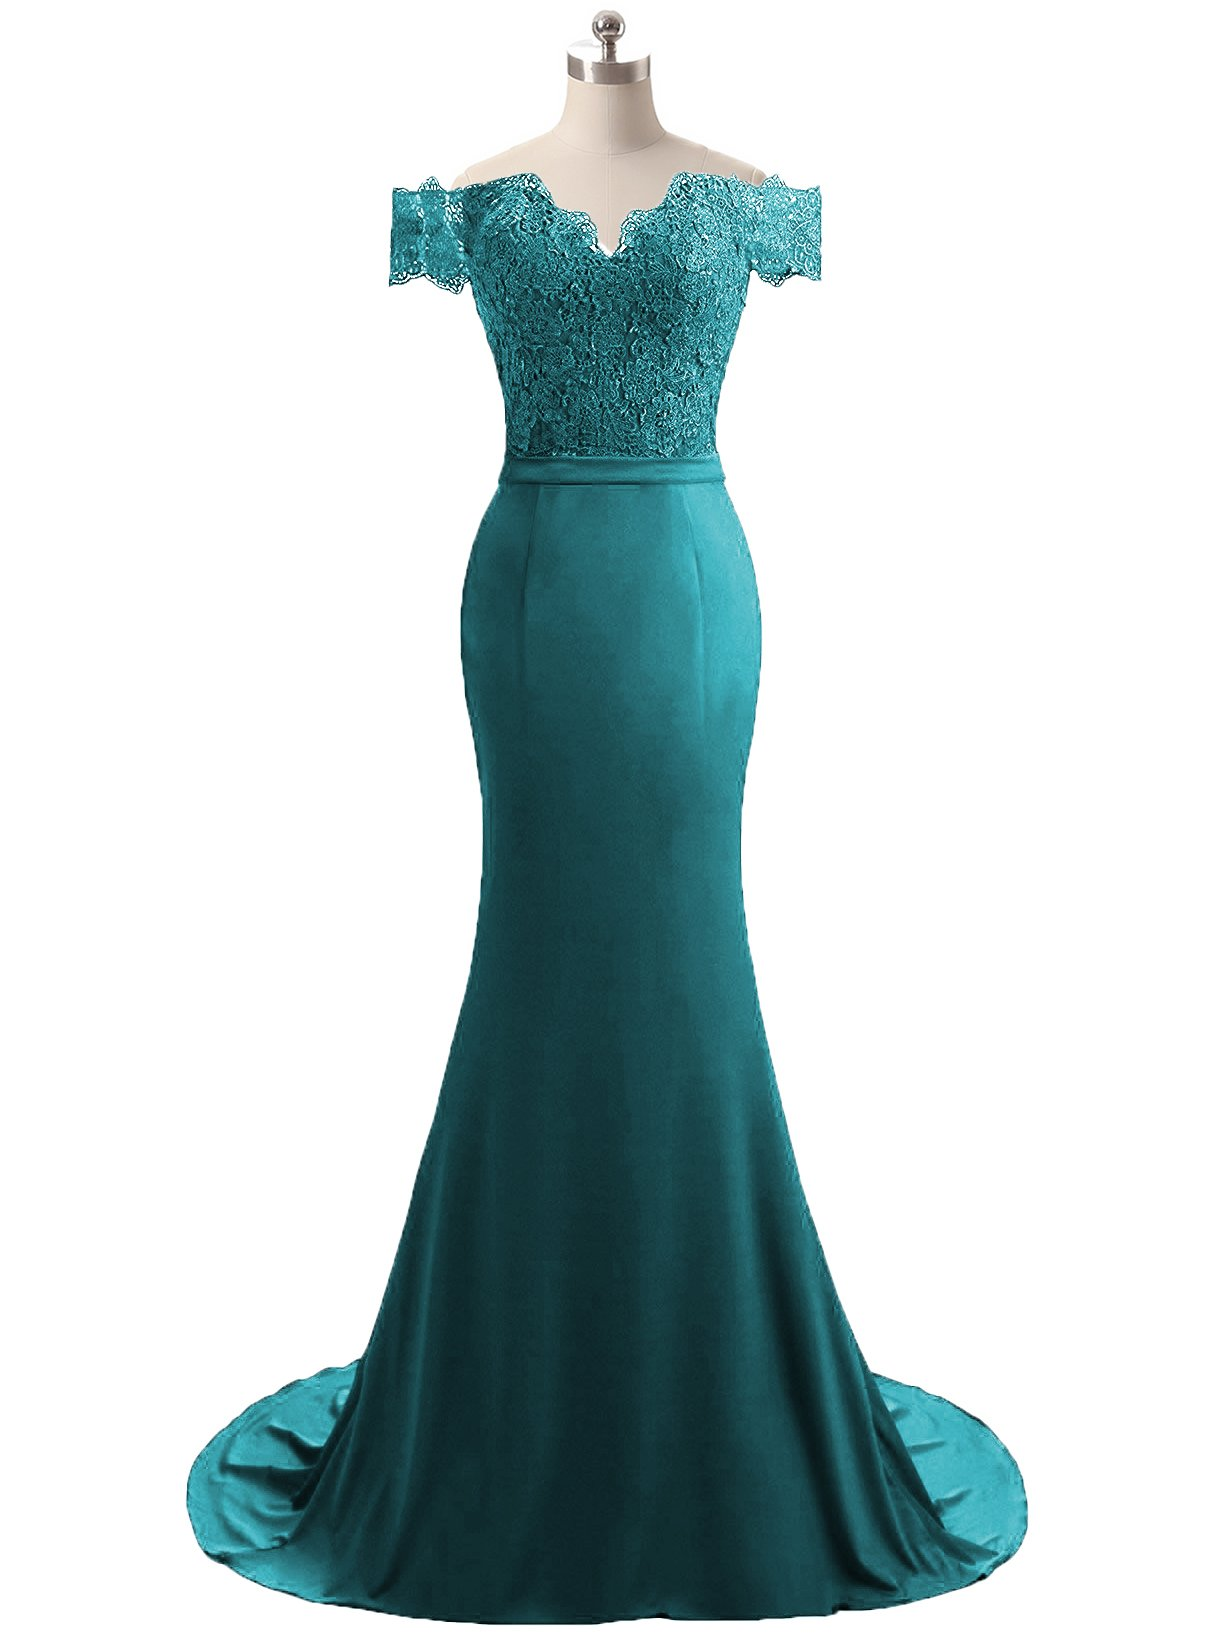 Teal Blue Mermaid Prom Dresses: Amazon.com